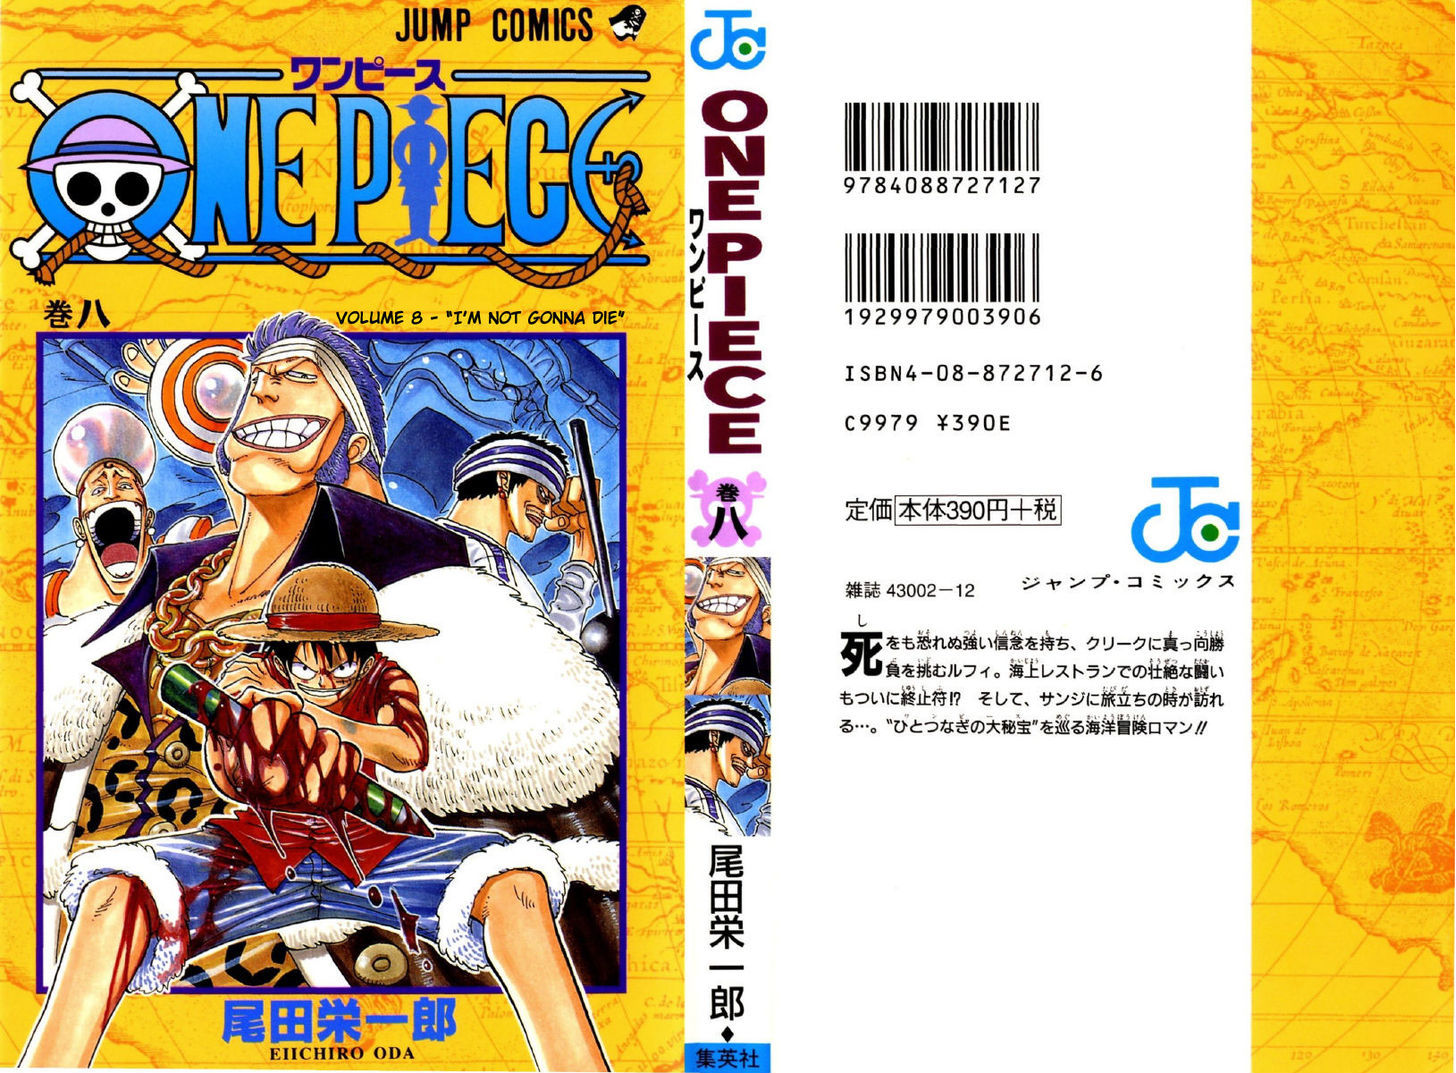 https://im.nineanime.com/comics/pic9/32/96/2411/OnePiece630281.jpg Page 1